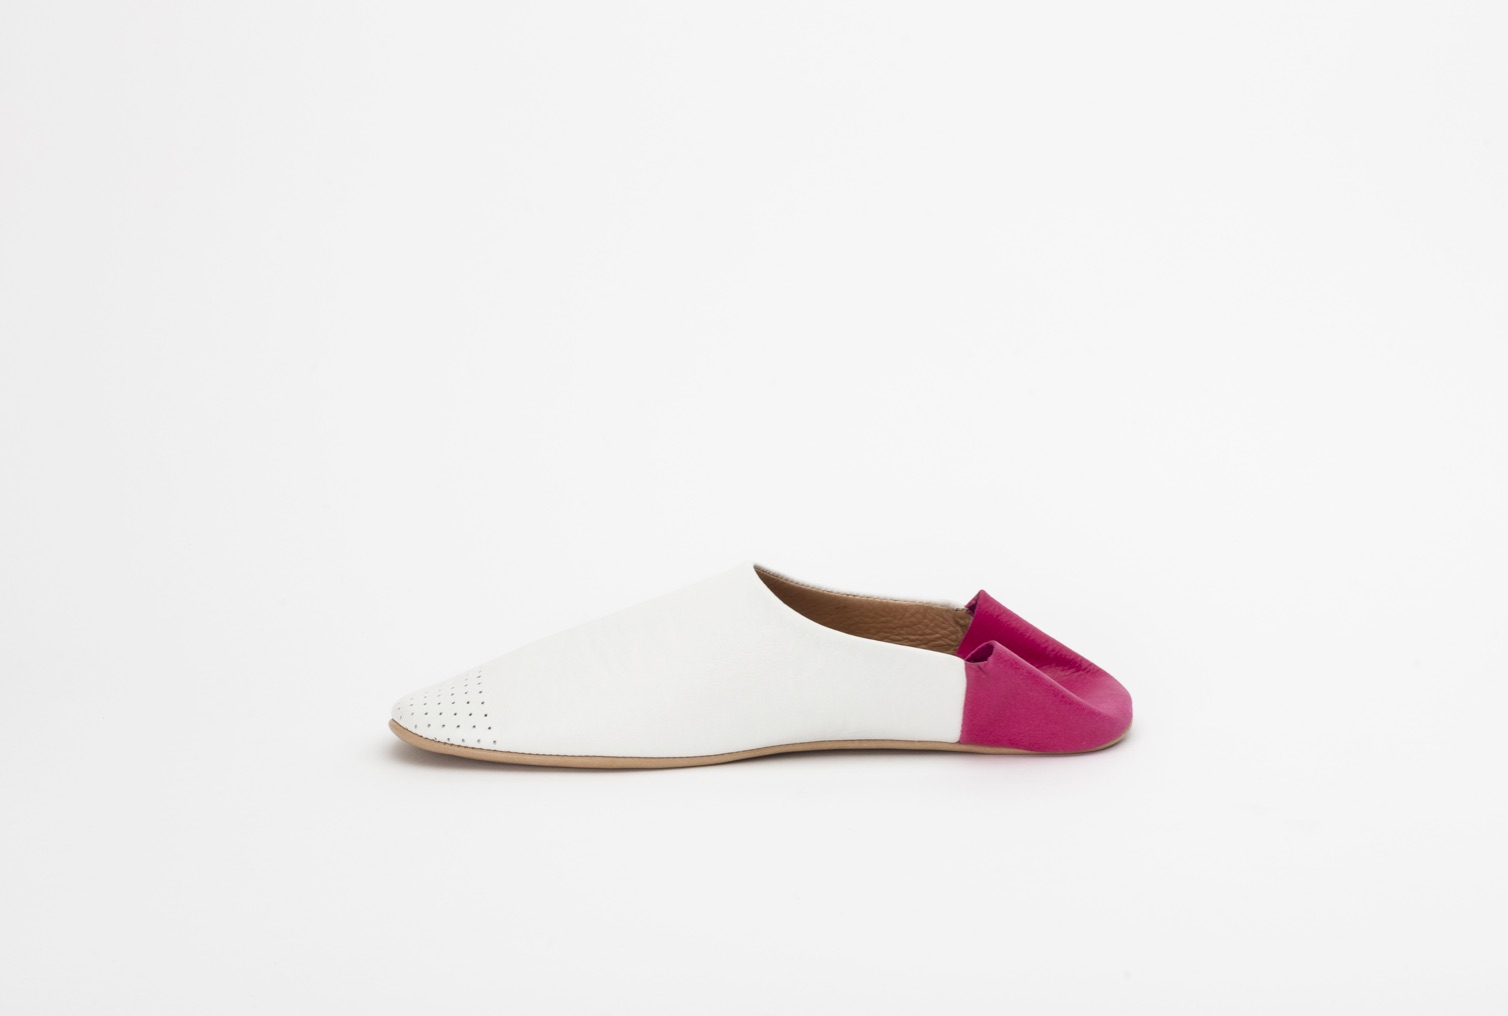 slippers-white-pink-jill-burrows